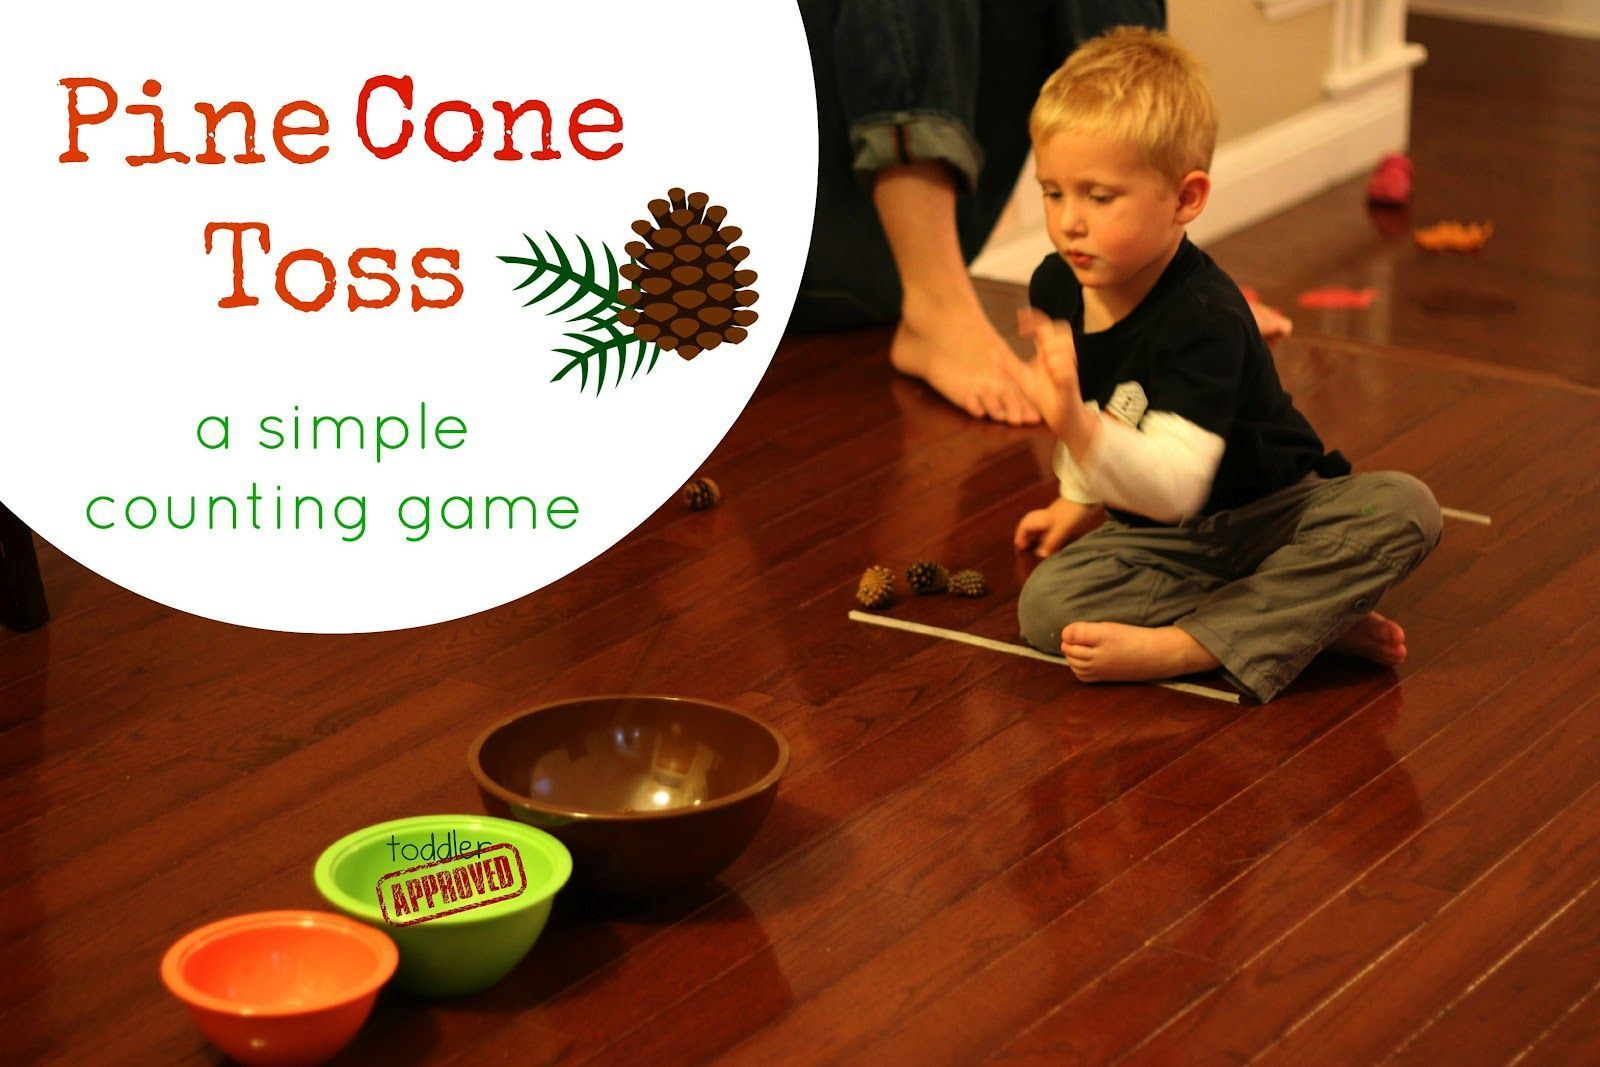 Cone Toss: A Simple Counting Game Toddler Approved!: Fall Pine Cone Toss: A Simple Counting Game. What are some other learning activities you like to do with pine cones?Toddler Approved!: Fall Pine Cone Toss: A Simple Counting Game. What are some other learning activities you like to do with pine cones?Pine Cone Toss: A Simple Counting Game Toddler Approved!: ...